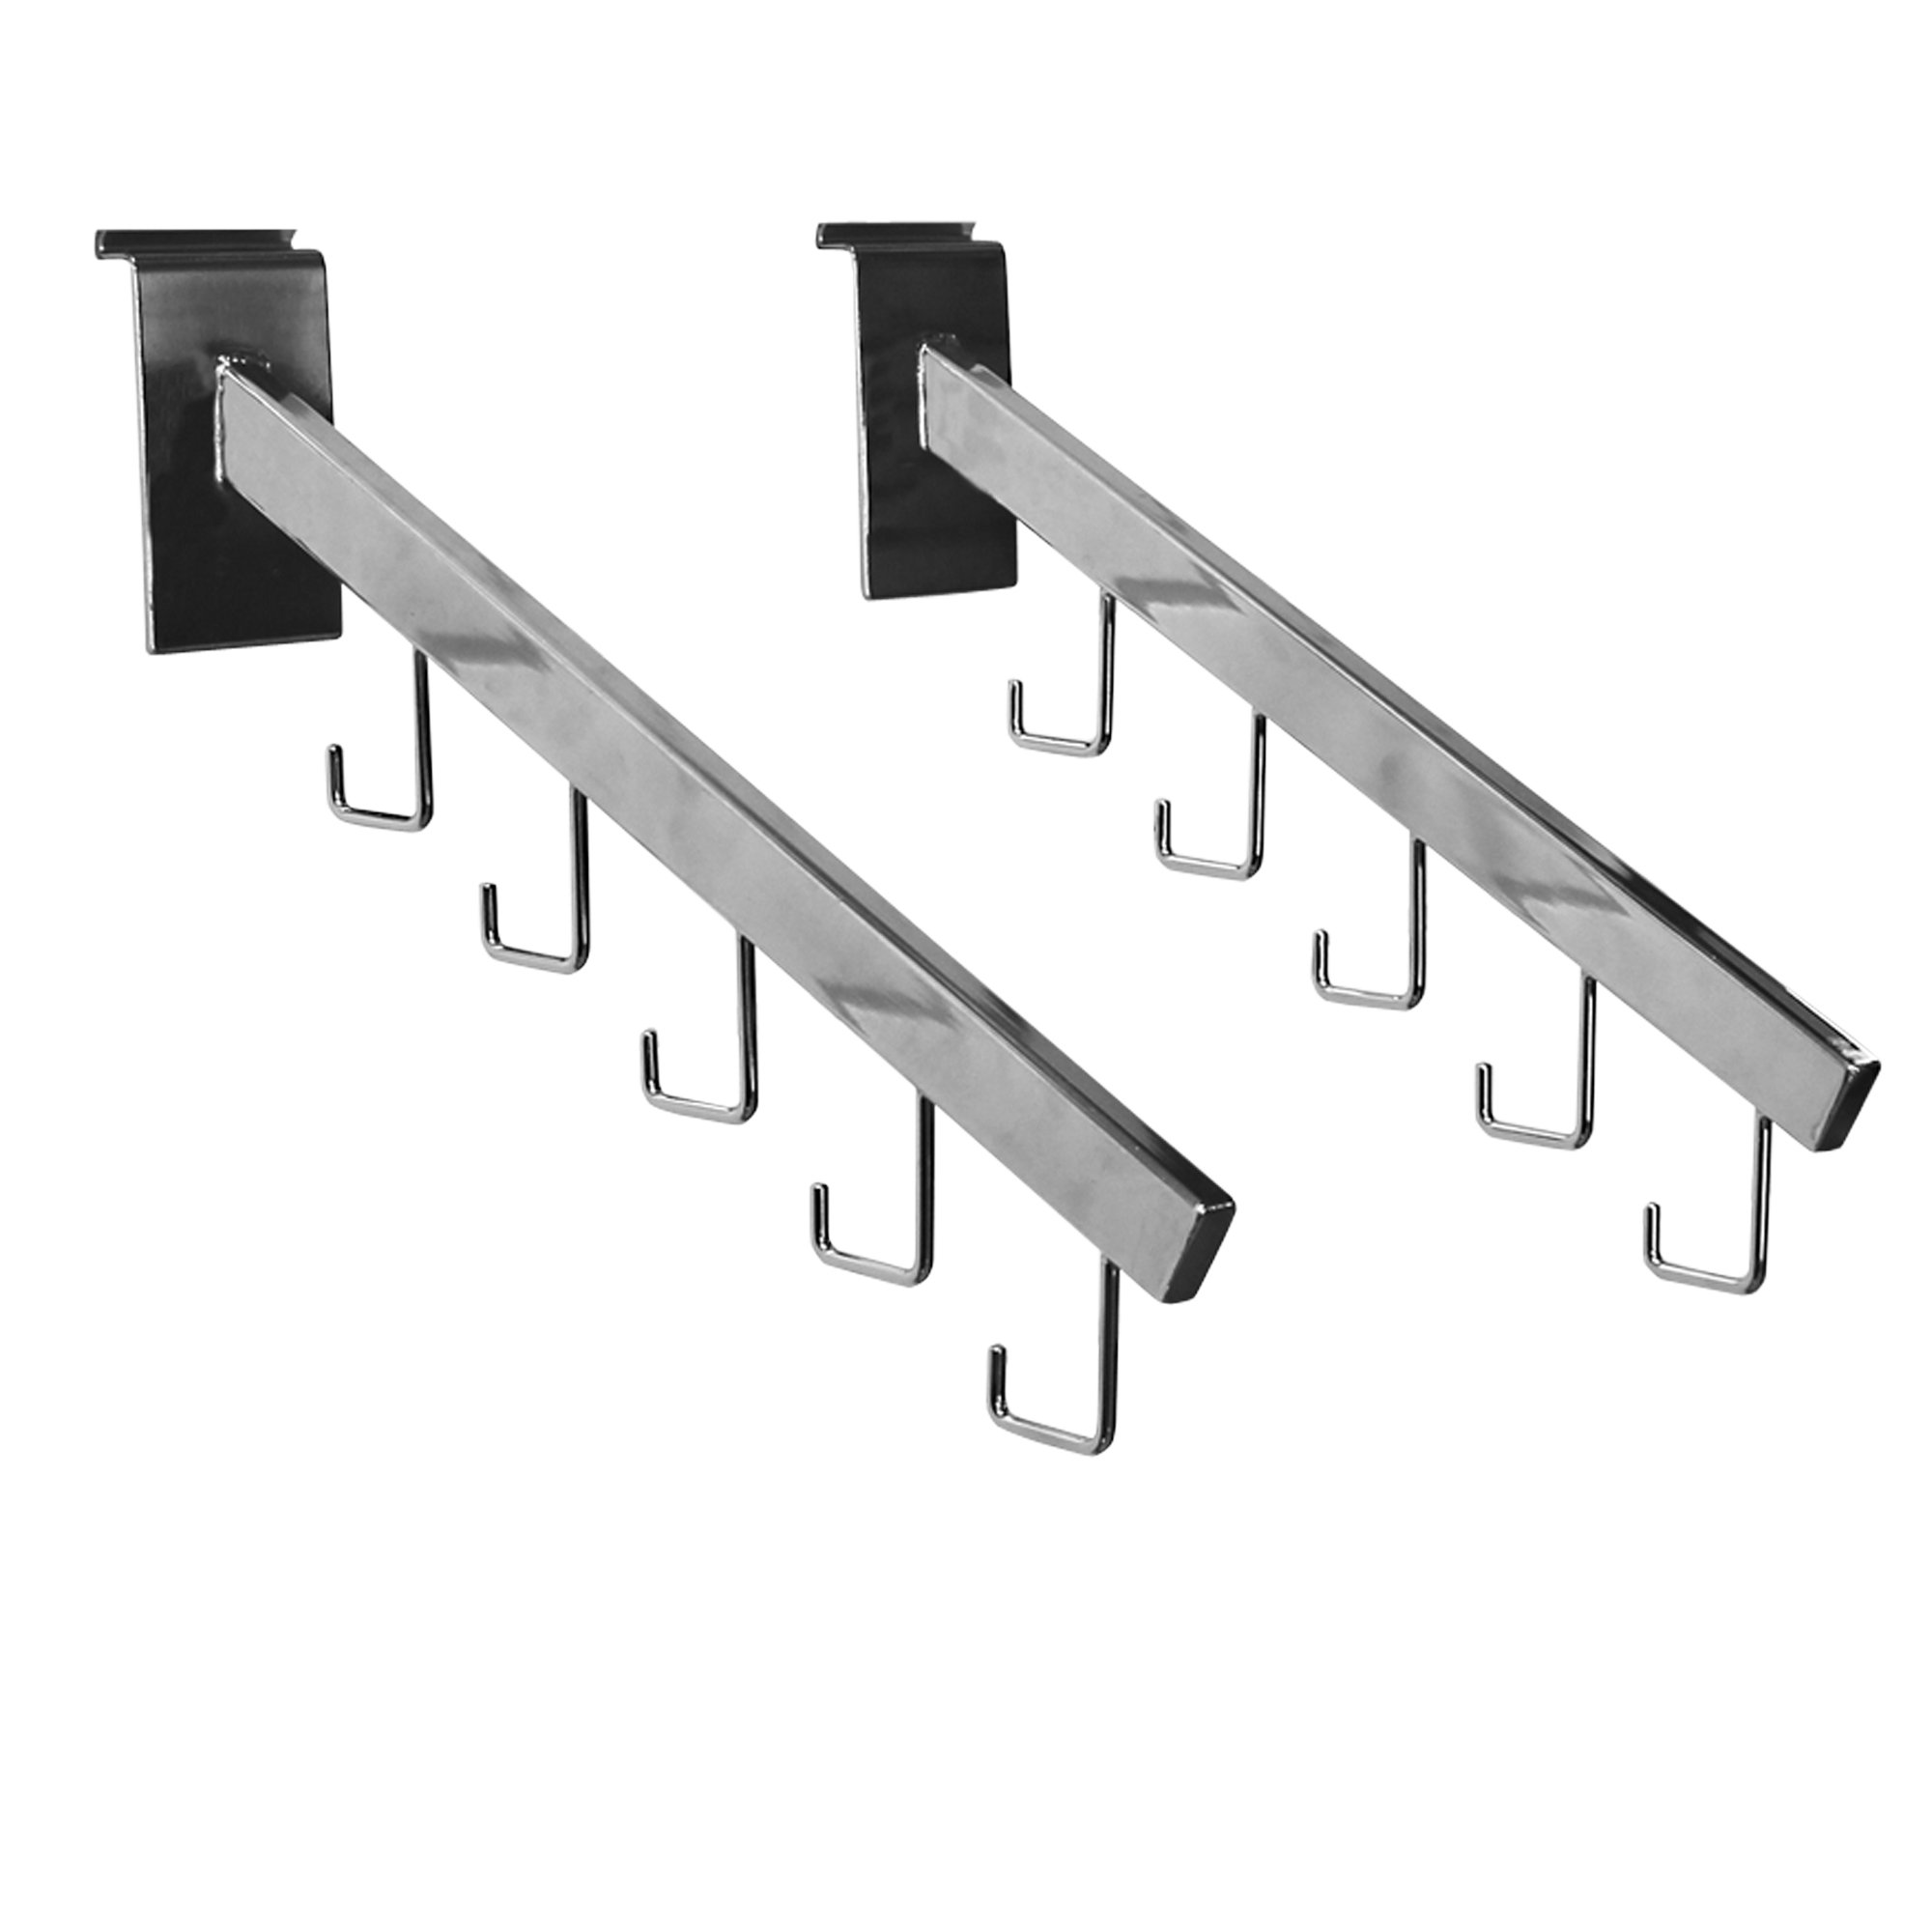 Proslat 39008 Evolia Universal Cascade for Slatwall, Chrome, 2-Pack by Proslat